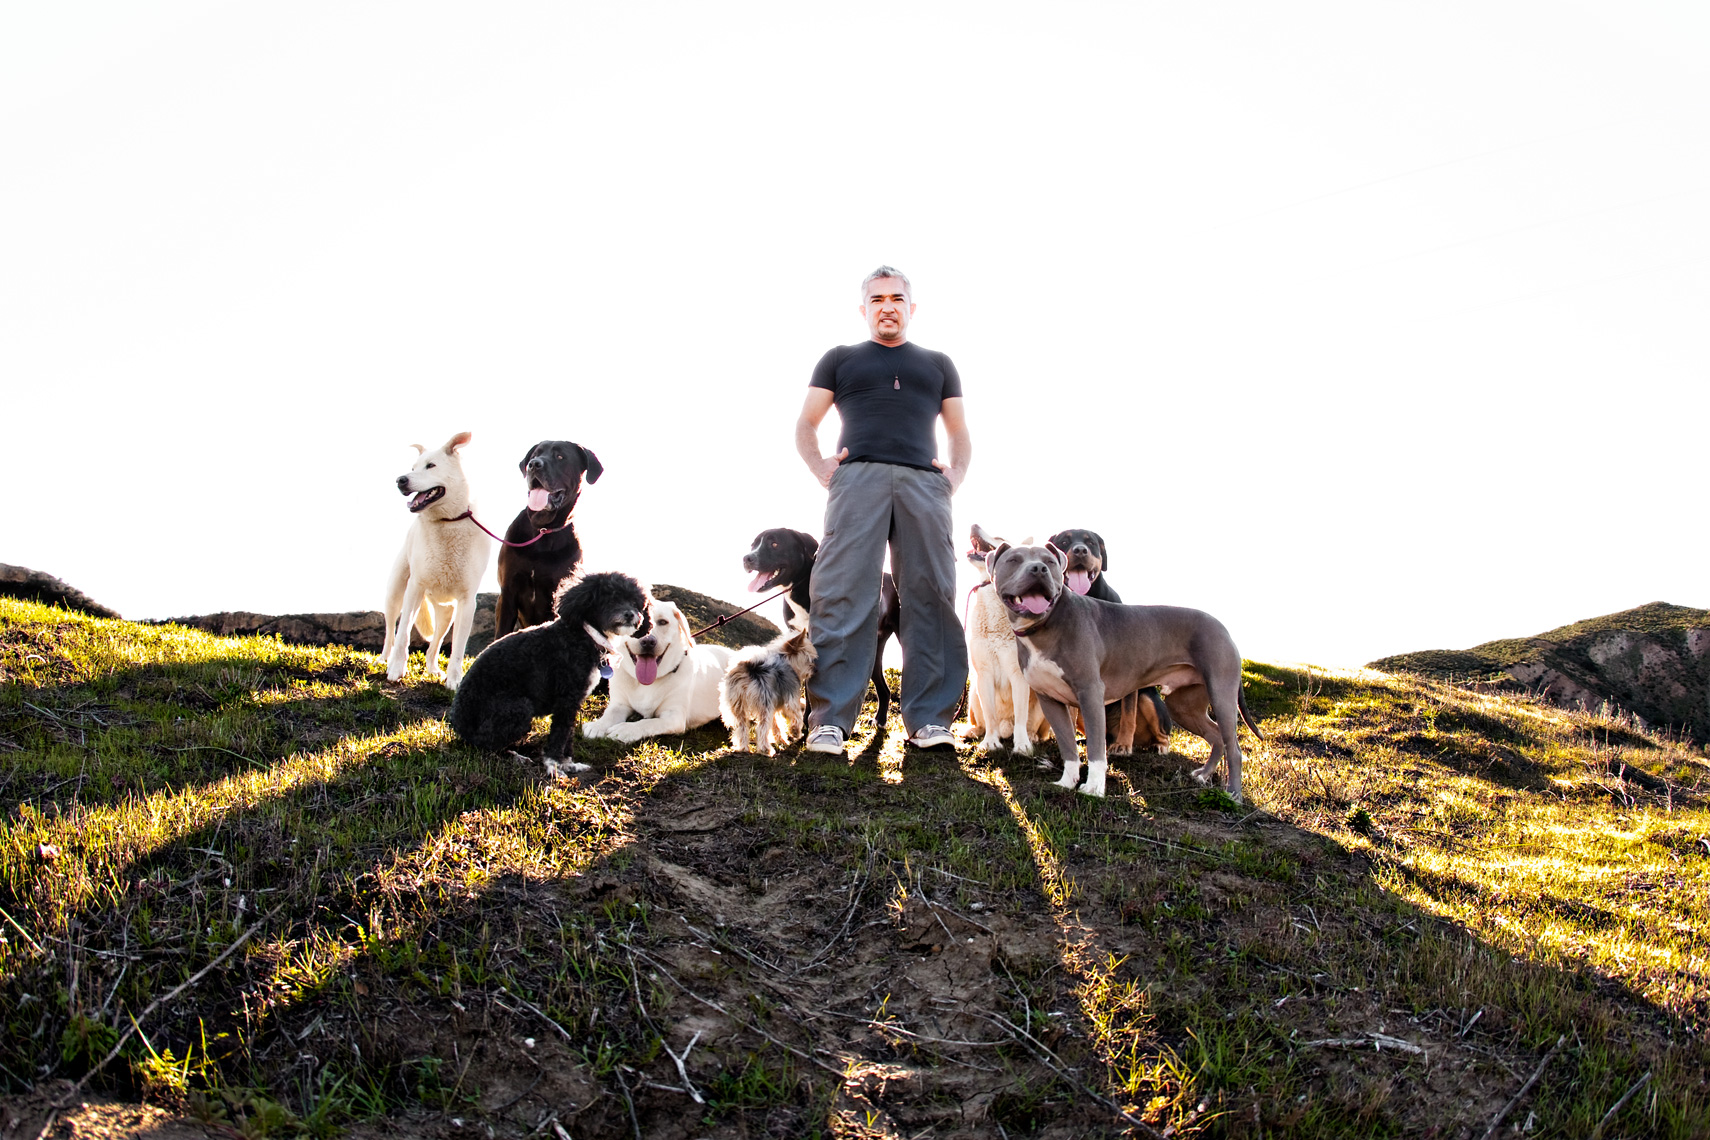 Los Angeles Dog Photography, Michael Brian, Cesar Millan, Dog Whisperer, Pit Bull, dog pack, Cesar